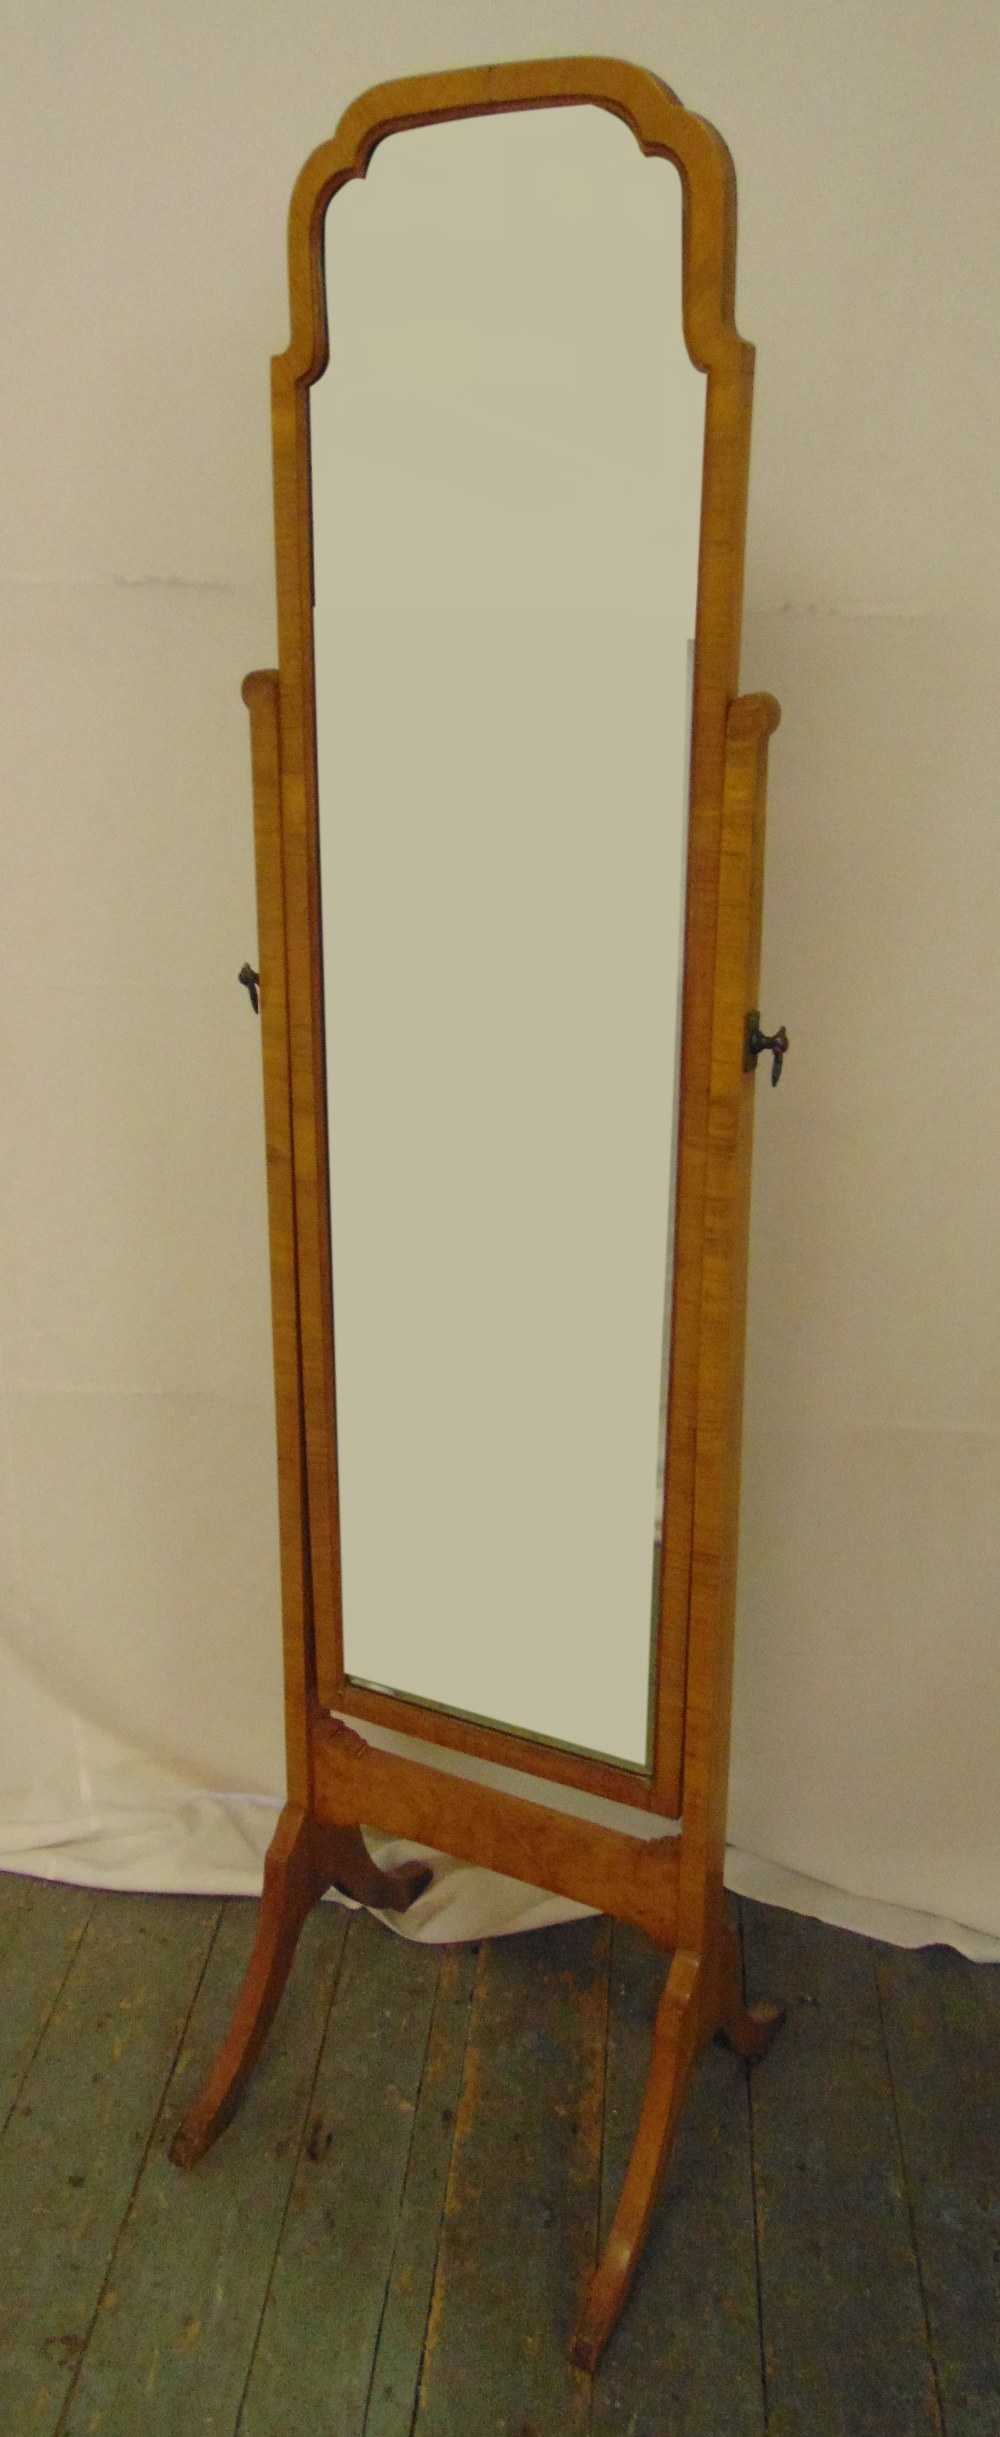 An Edwardian rectangular mahogany cheval mirror on four outswept supports, 163 x 41 x 44cm